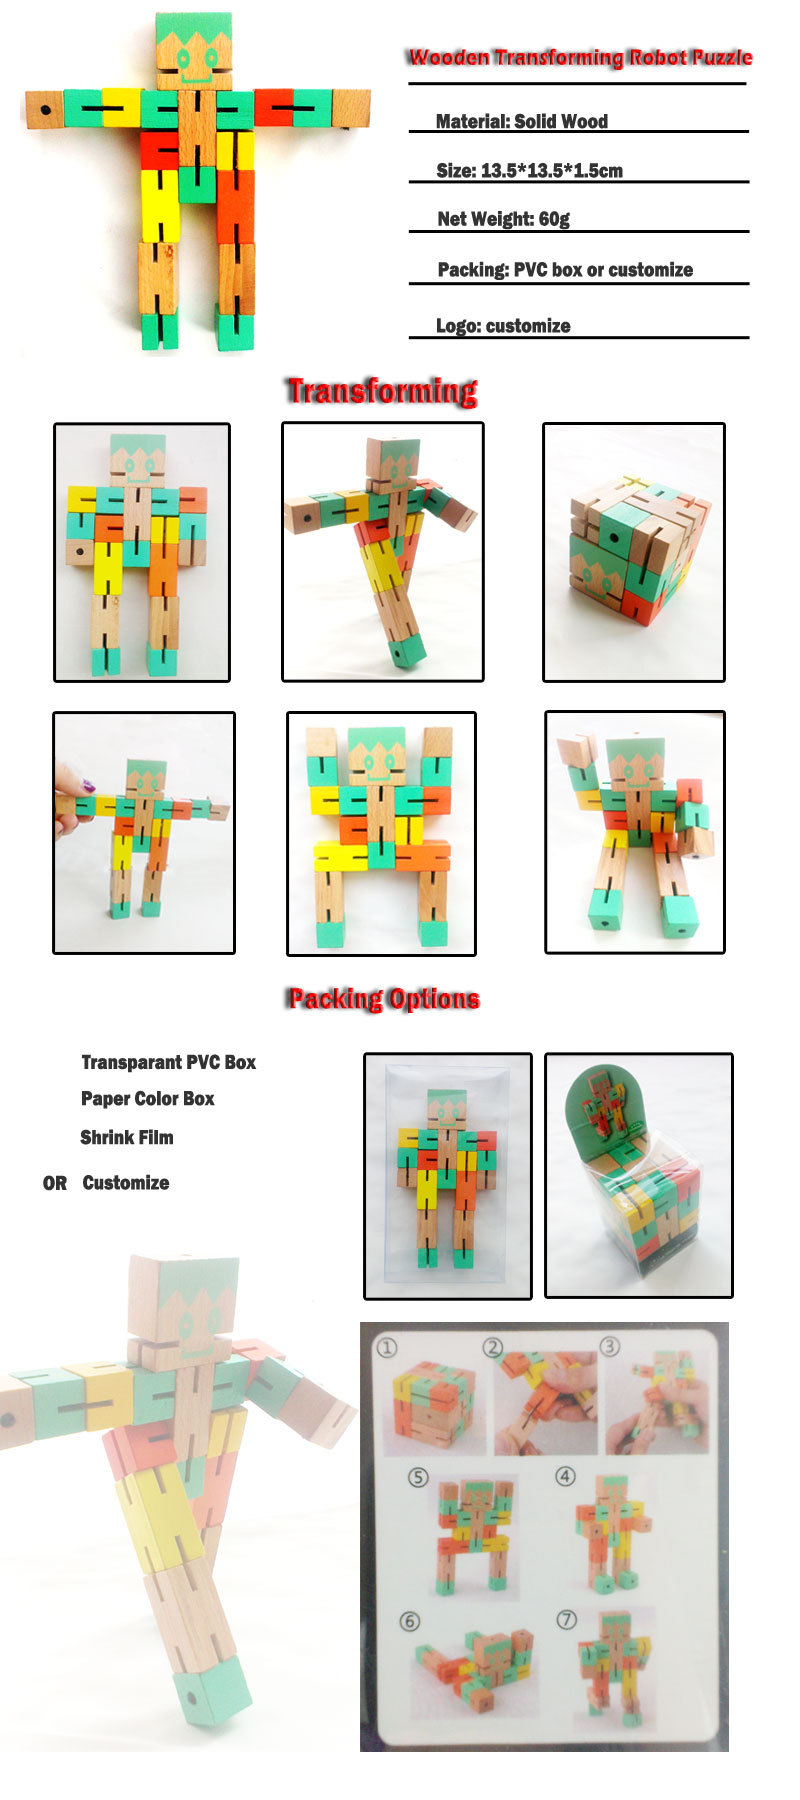 Logo Printing Toys for Kids, Educational Wooden Robot Puzzle Cube Puzzle Toys Intelligence Toy